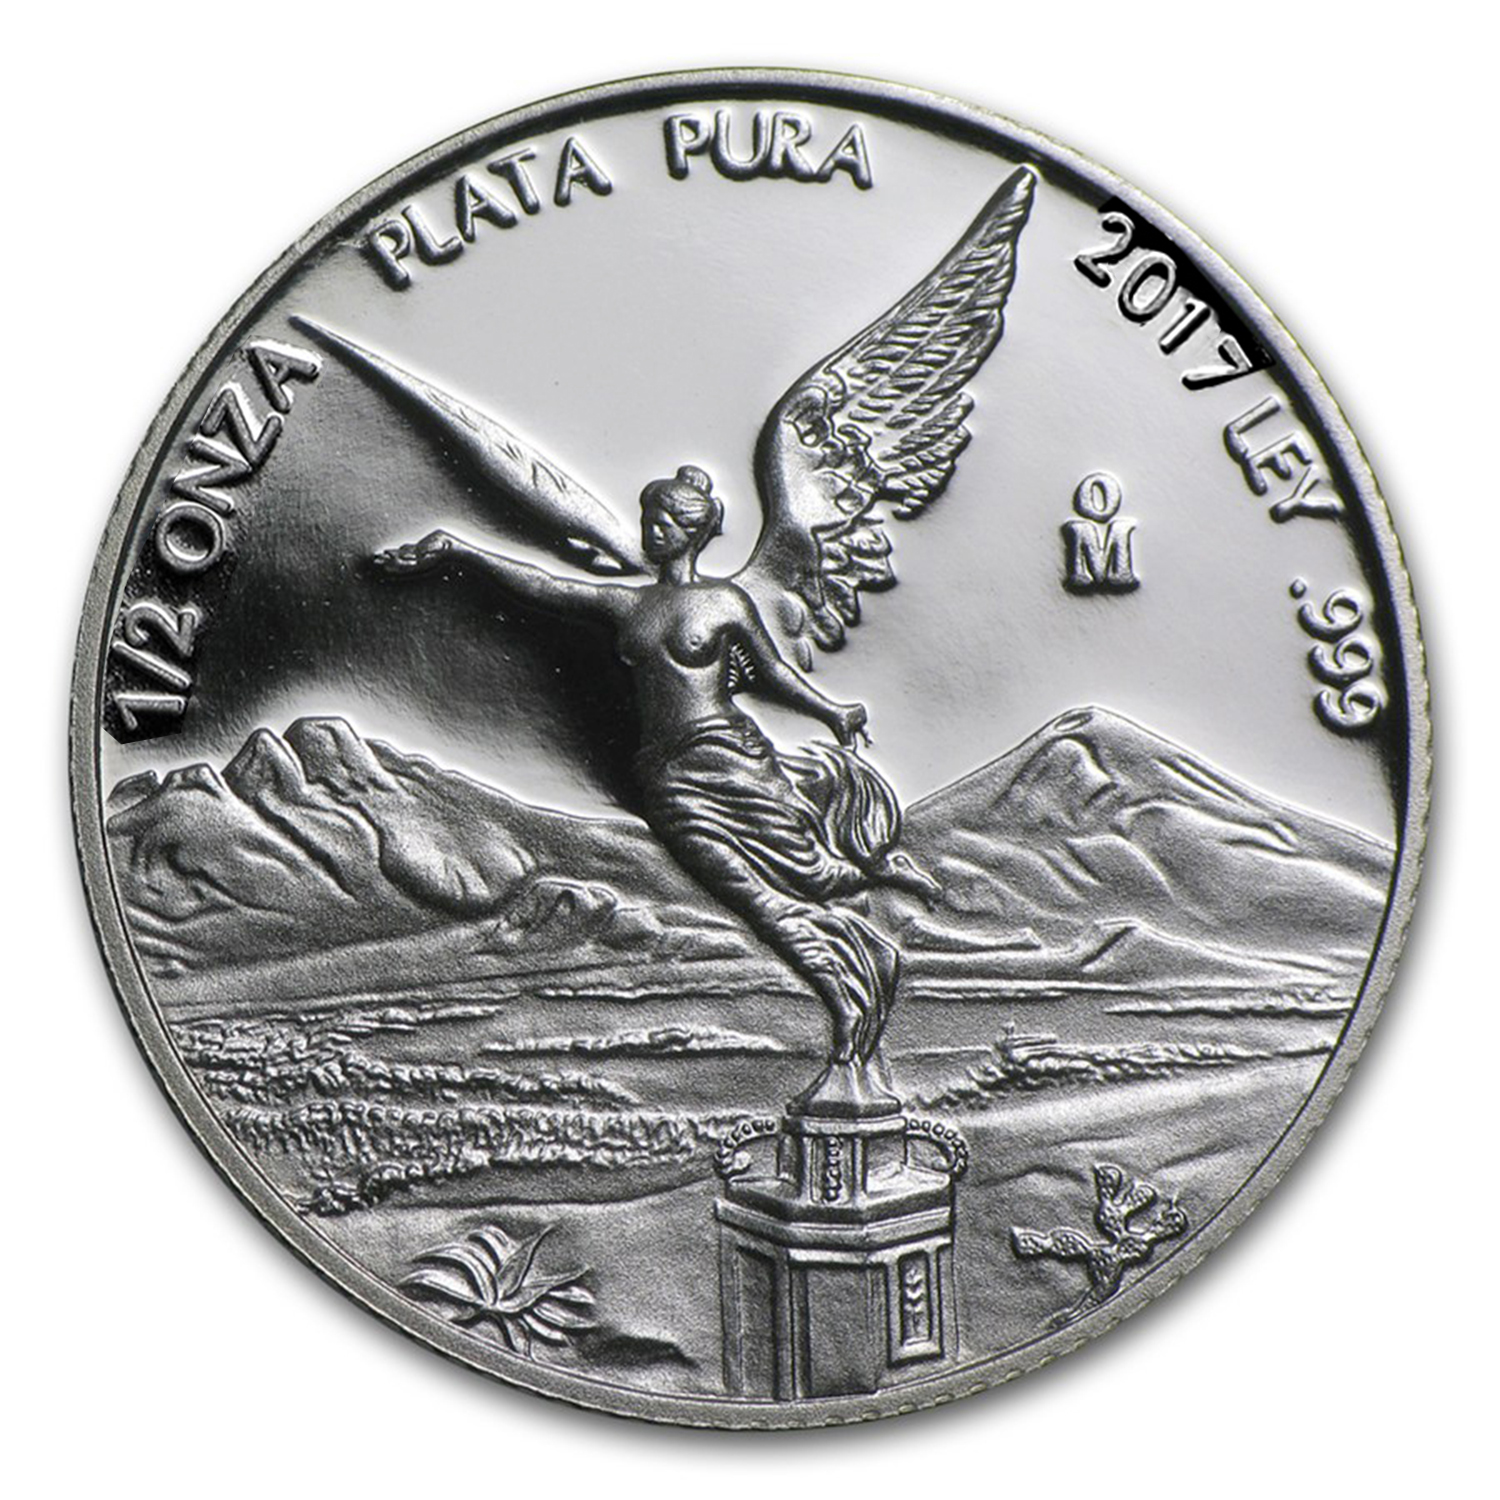 2017 Mexico 1/2 oz Silver Libertad Proof (In Capsule)